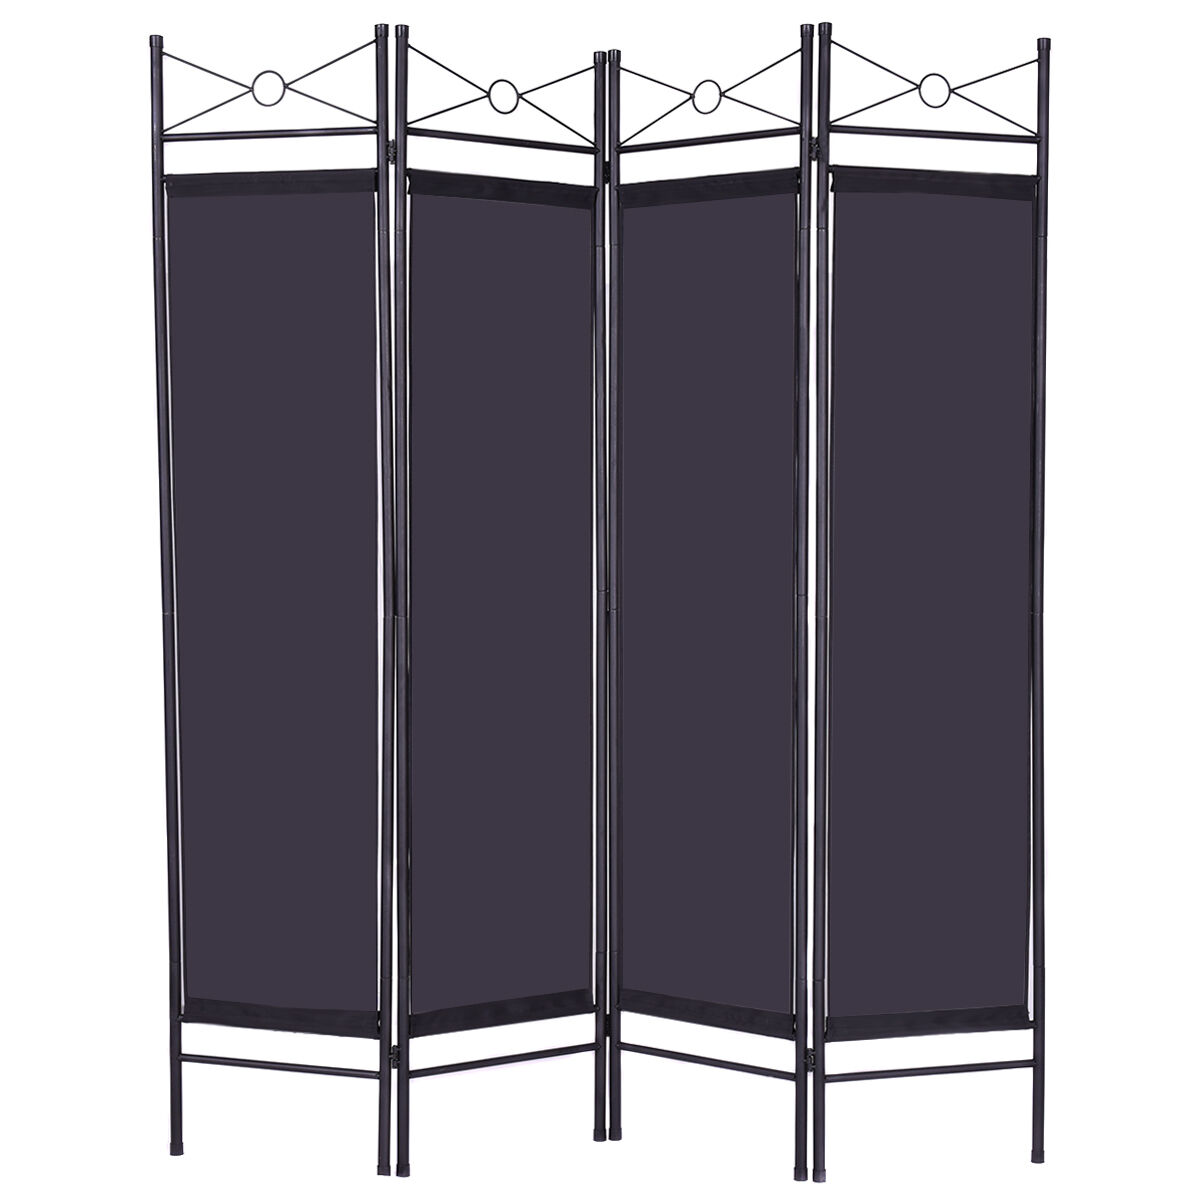 Folding screen room divider foldable wall free standing for Wall screen room divider